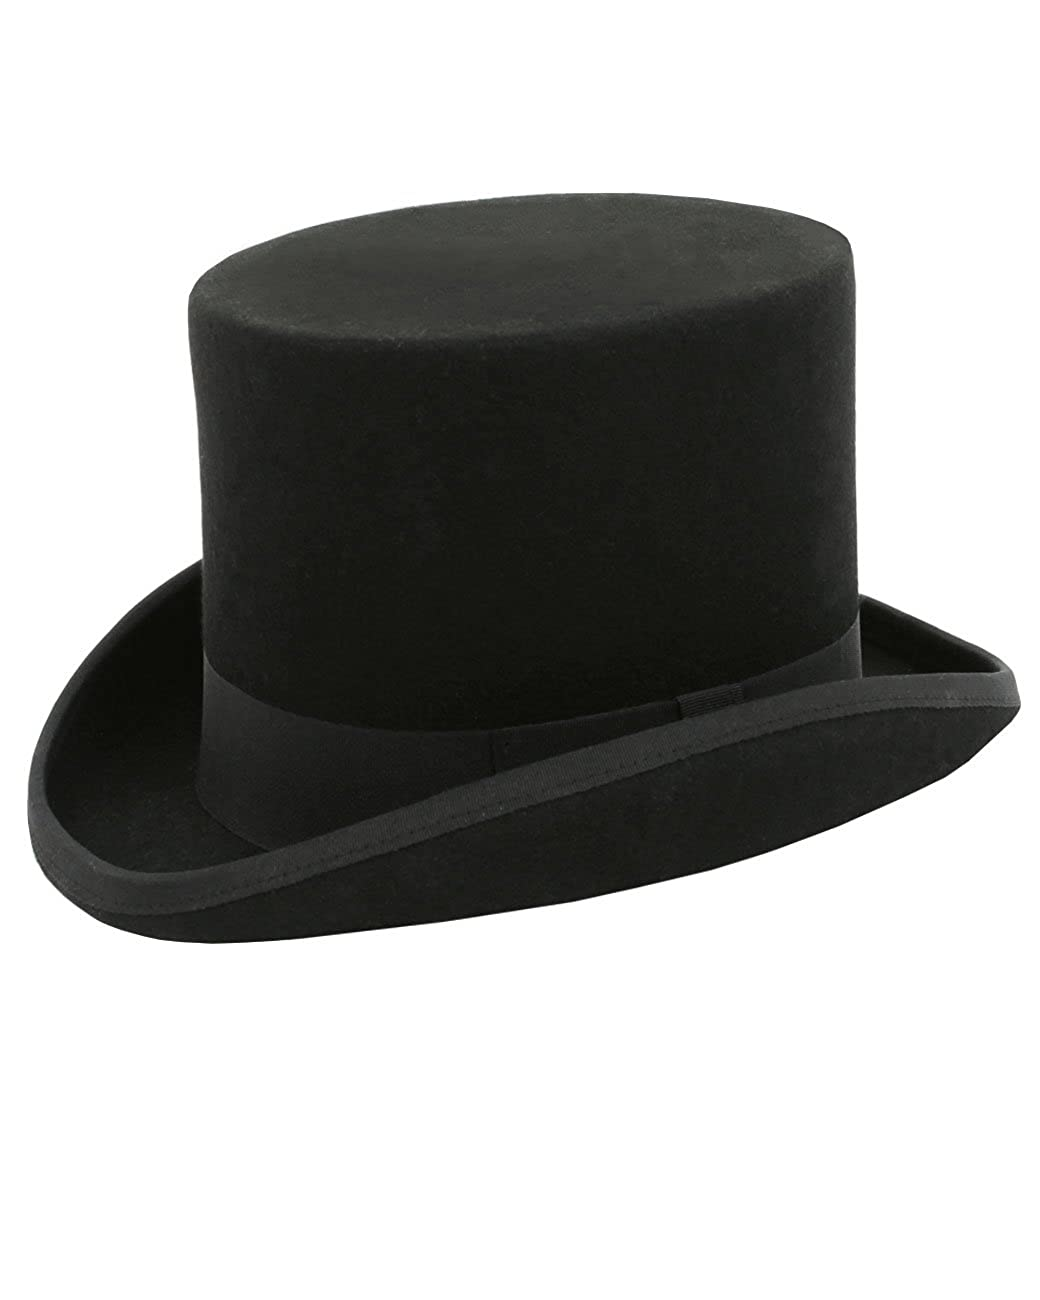 Edwardian Men's Formal Wear Dobell Mens Black Top Hat 100% Wool Formal Wedding Races $69.95 AT vintagedancer.com